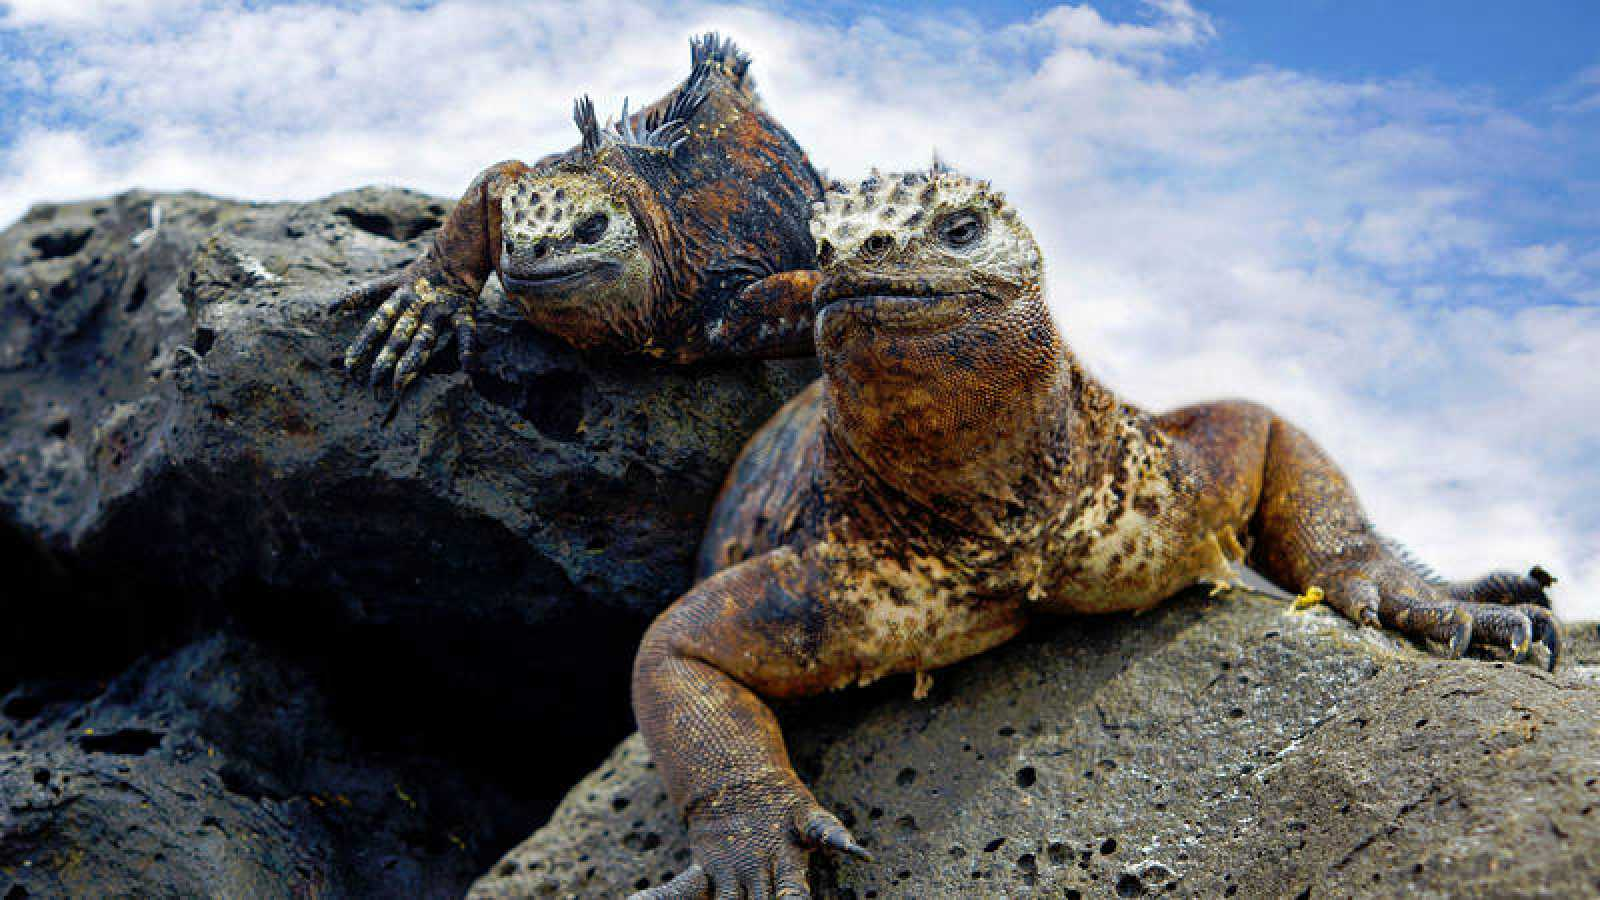 The Galapagos Islands Have Ten Times More Invasive Marine Species Than Previously Thought